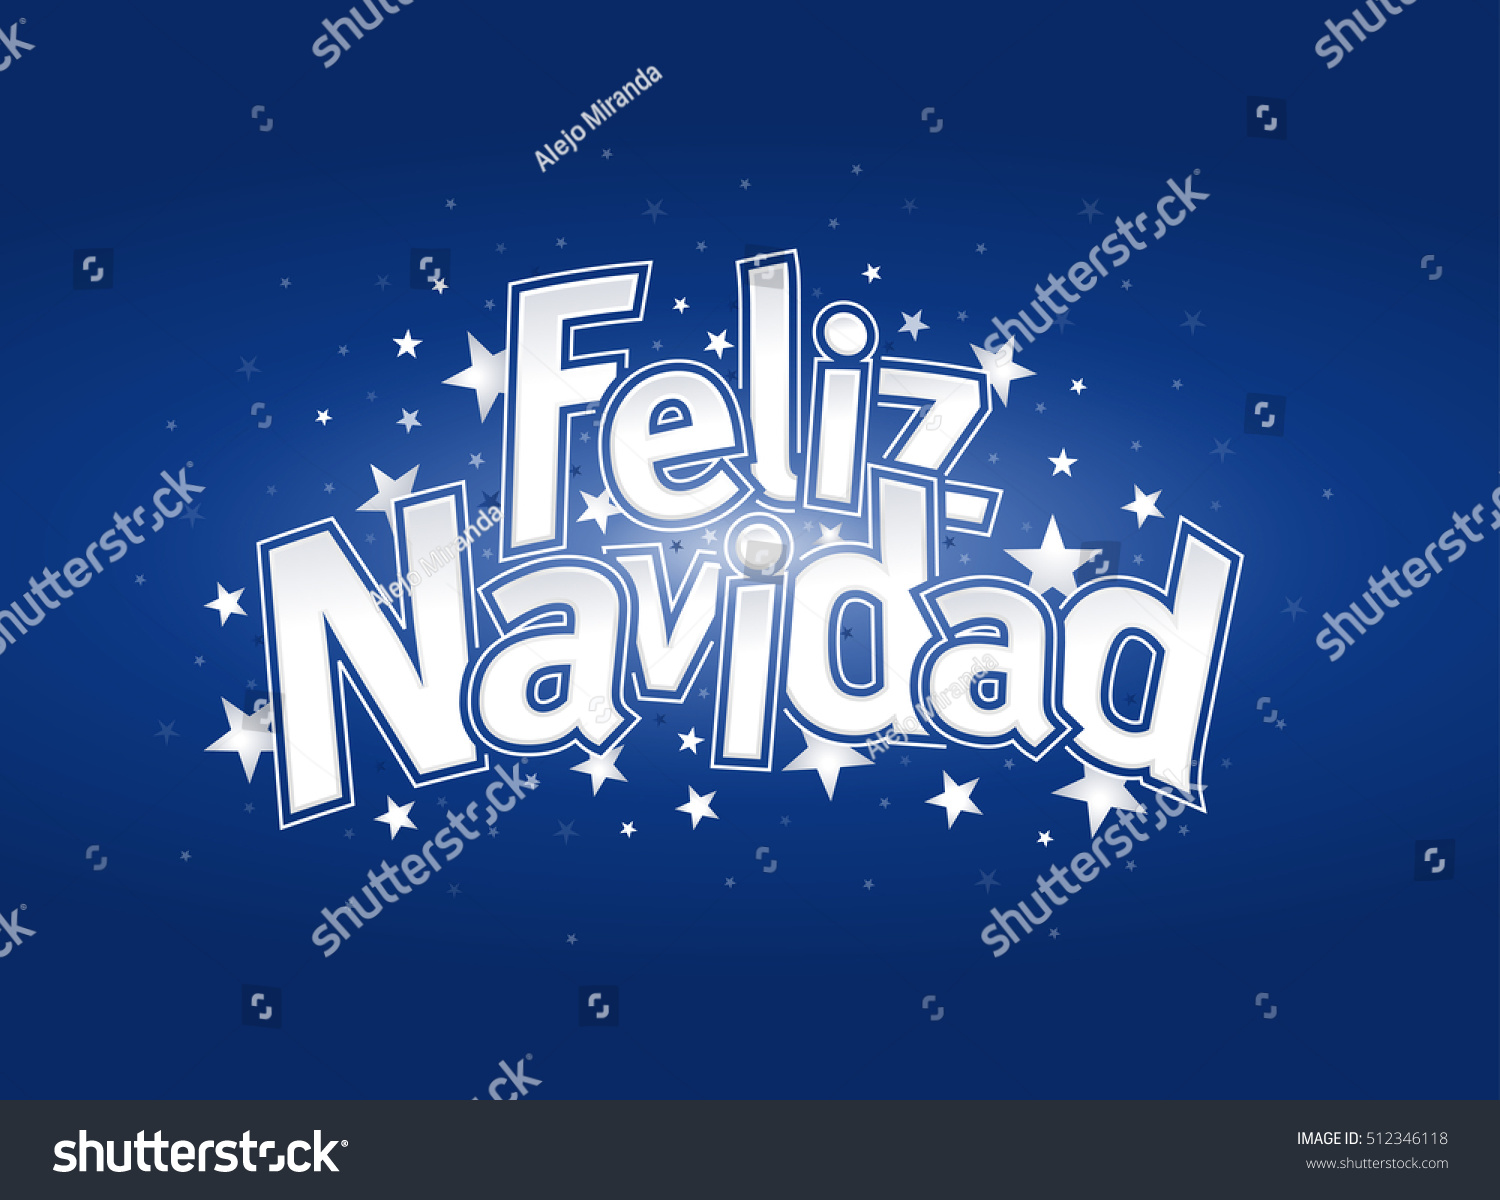 Feliz navidad merry christmas spanish language stock photo photo feliz navidad merry christmas in spanish language blue cover of greeting card with stars m4hsunfo